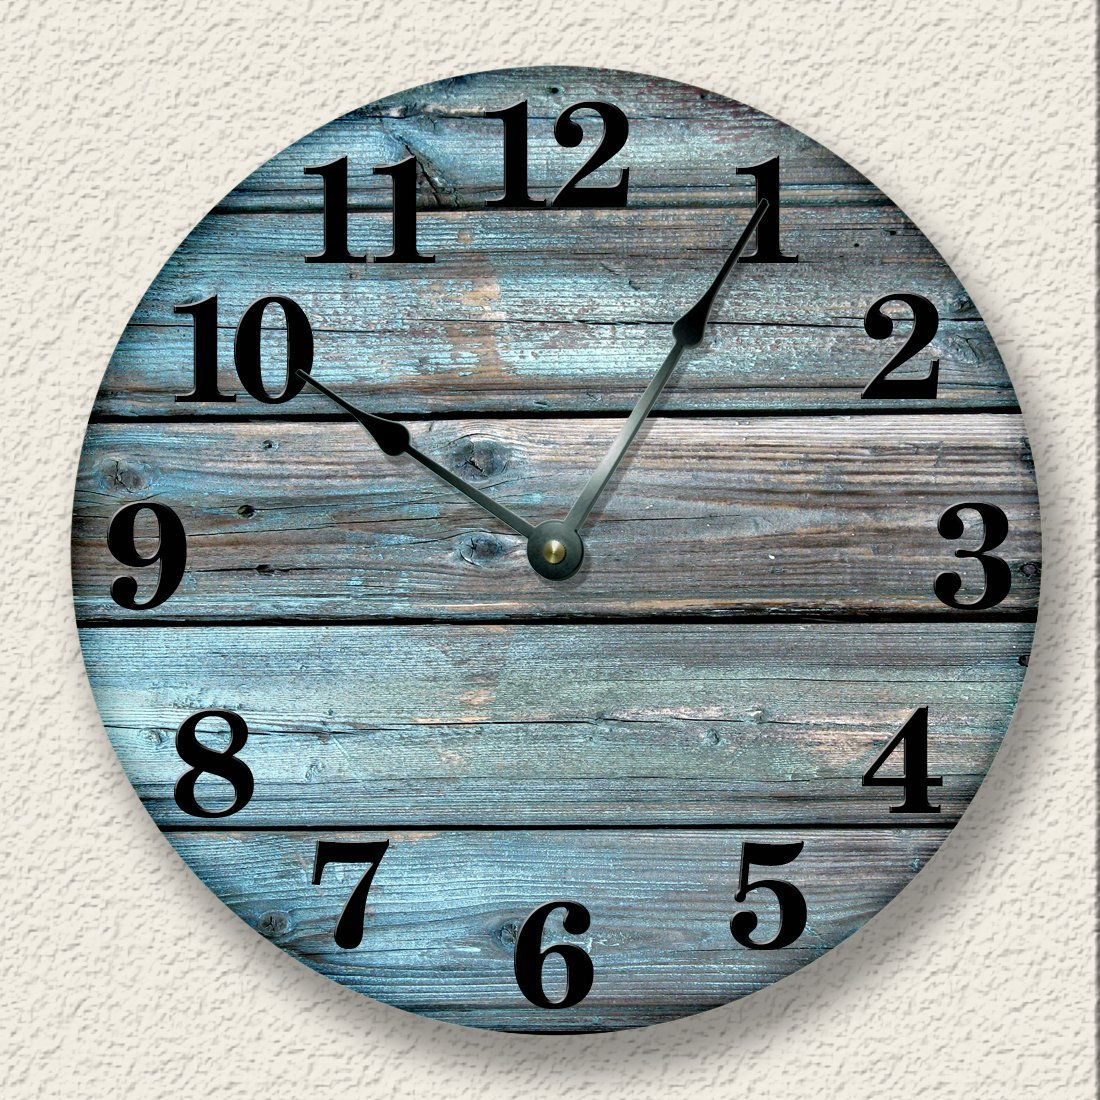 Amazon.com: Weathered boards image Wall Clock Distressed Teal Rustic ...